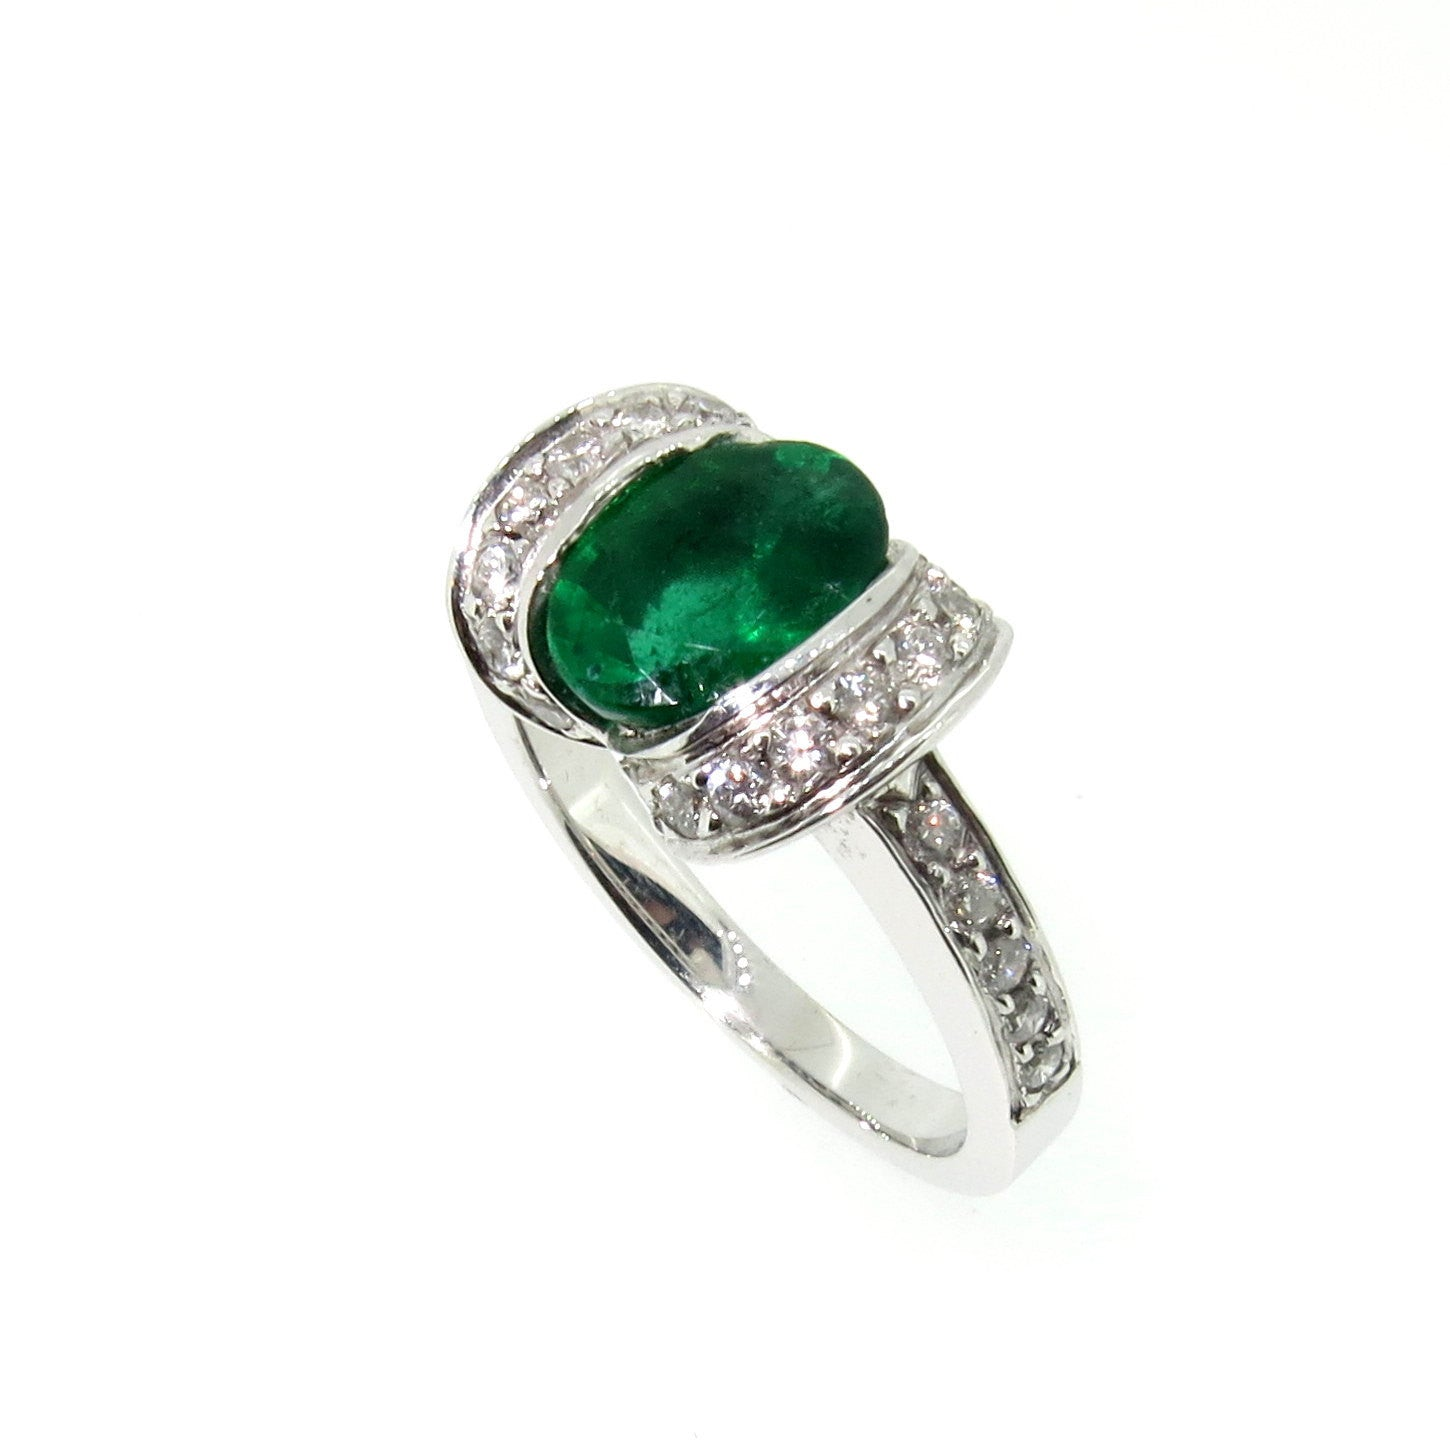 Vintage Style Emerald & Diamond Engagement/Cocktail Ring, Art Deco, Gemstone Engagement, Alternative Engagement Ring